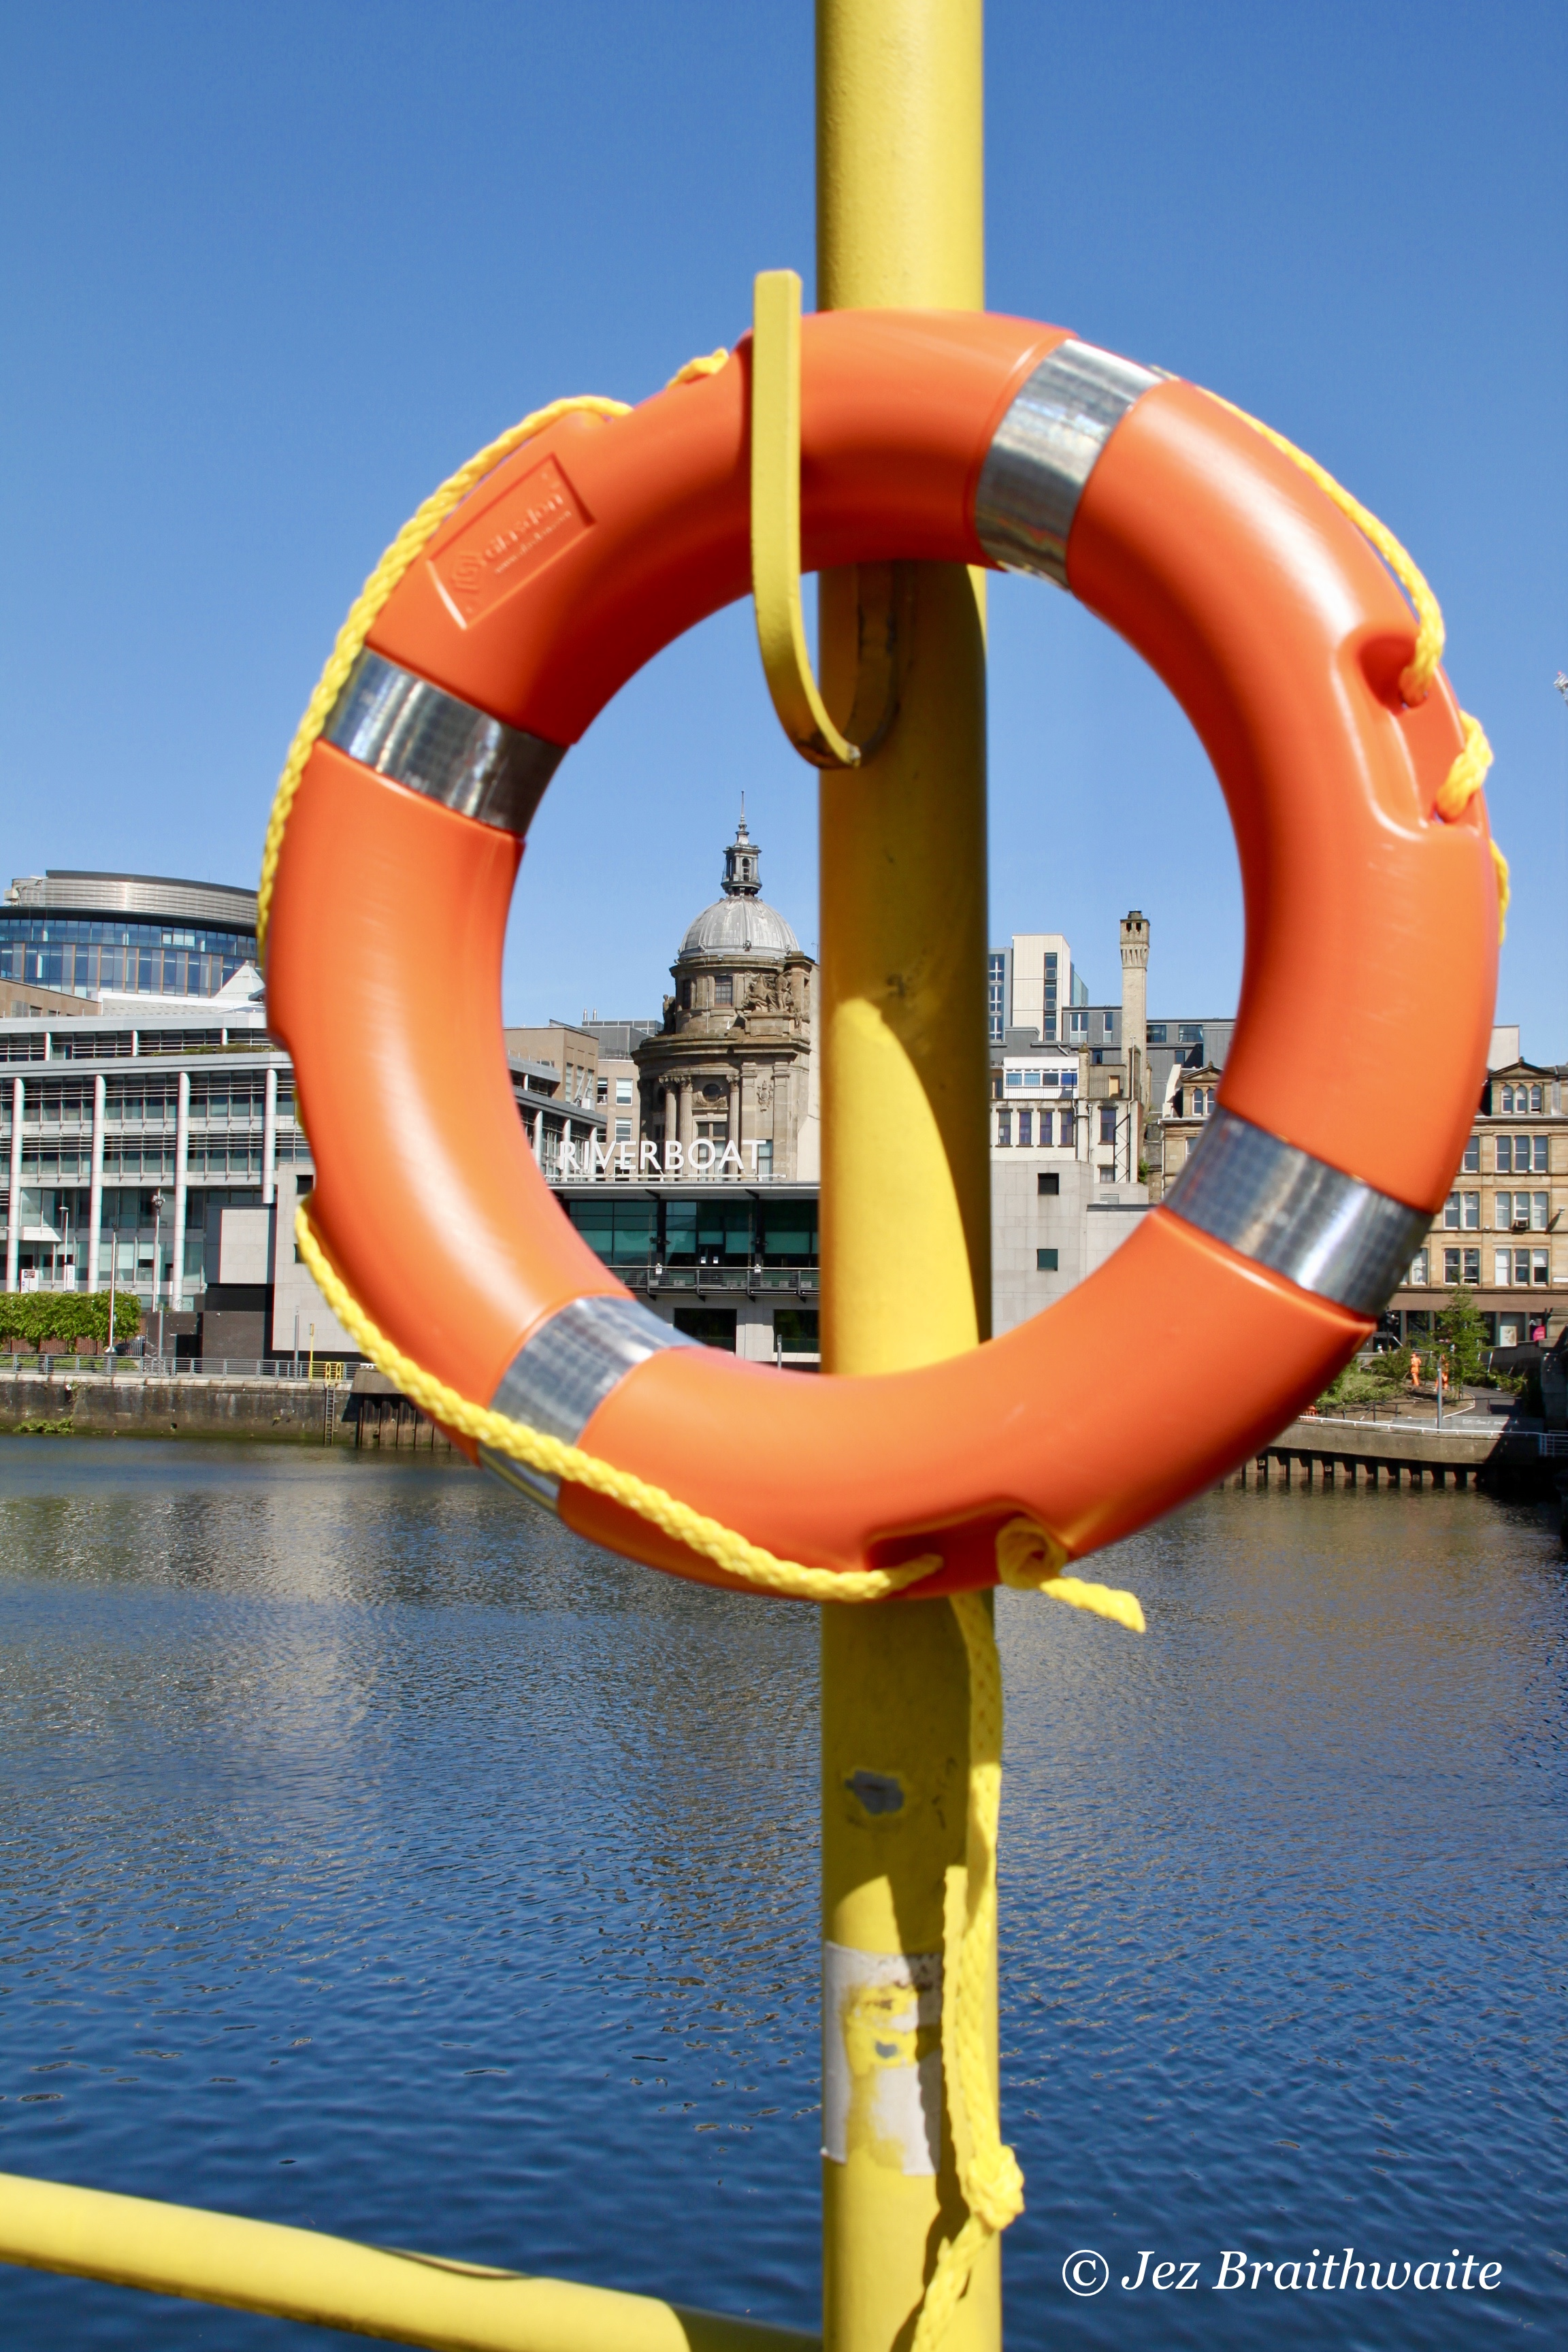 Riverboat on the River Clyde by Jez Braithwaite